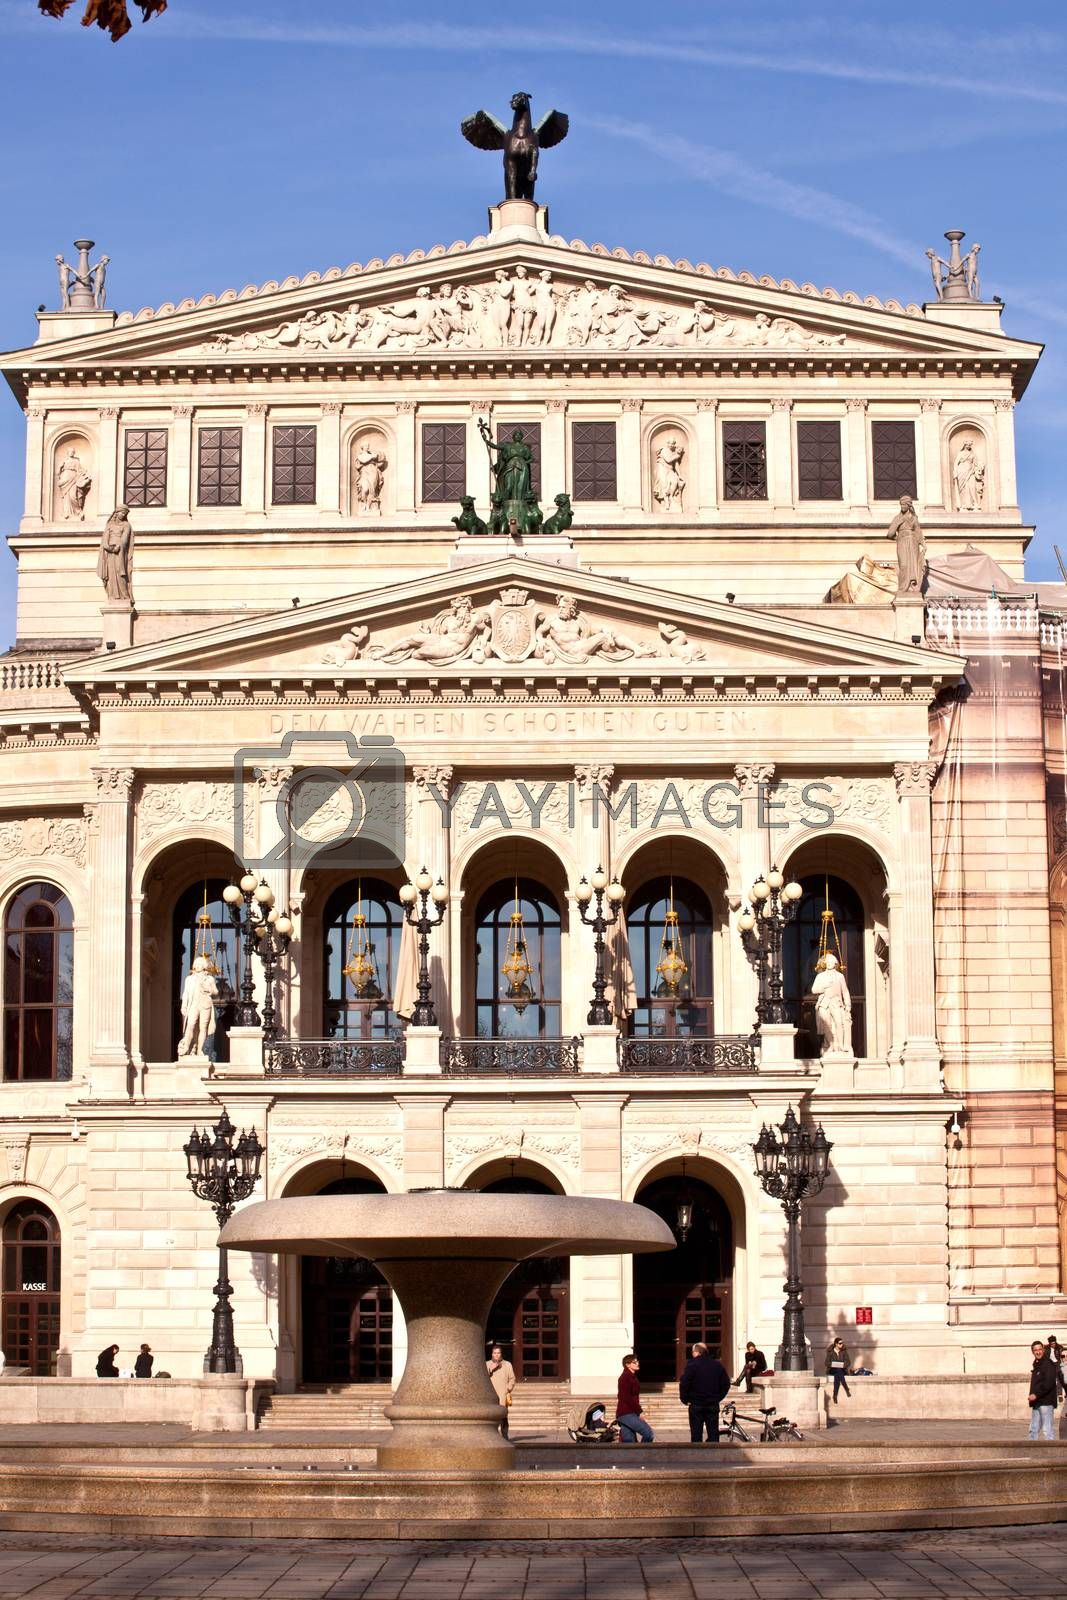 FRANKFURT, GERMANY - FEB 9, 2011: the Old opera house in Frankfurt, Germany. Alte Oper is a concert hall build in 1970s on the site of and resembling the old Opera House destroyed in 1944.